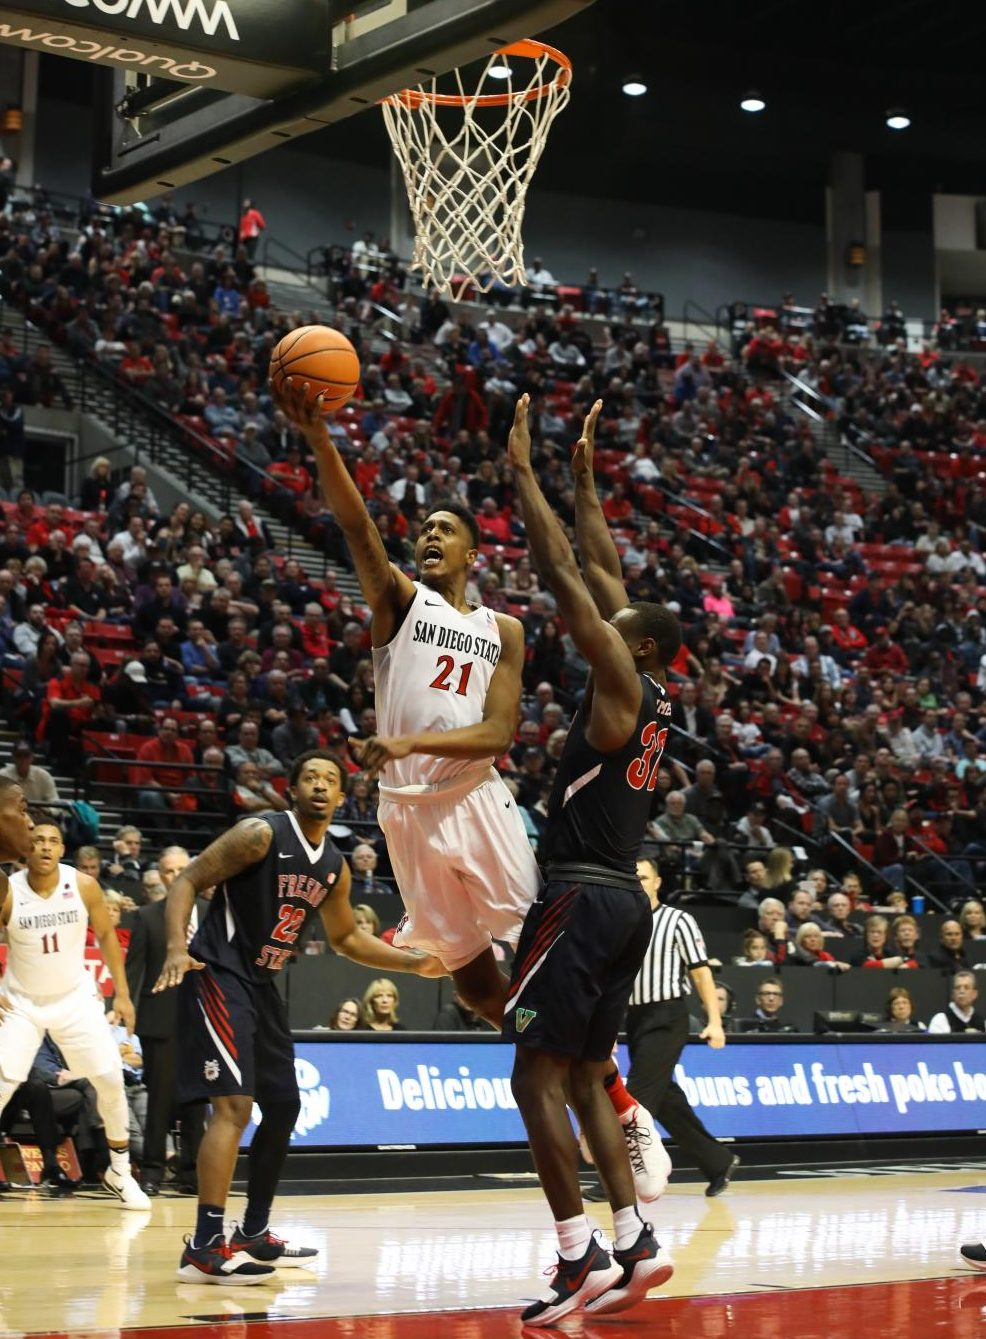 Senior forward Malik Pope rises for a layup during SDSU's 77-73 loss to Fresno State.